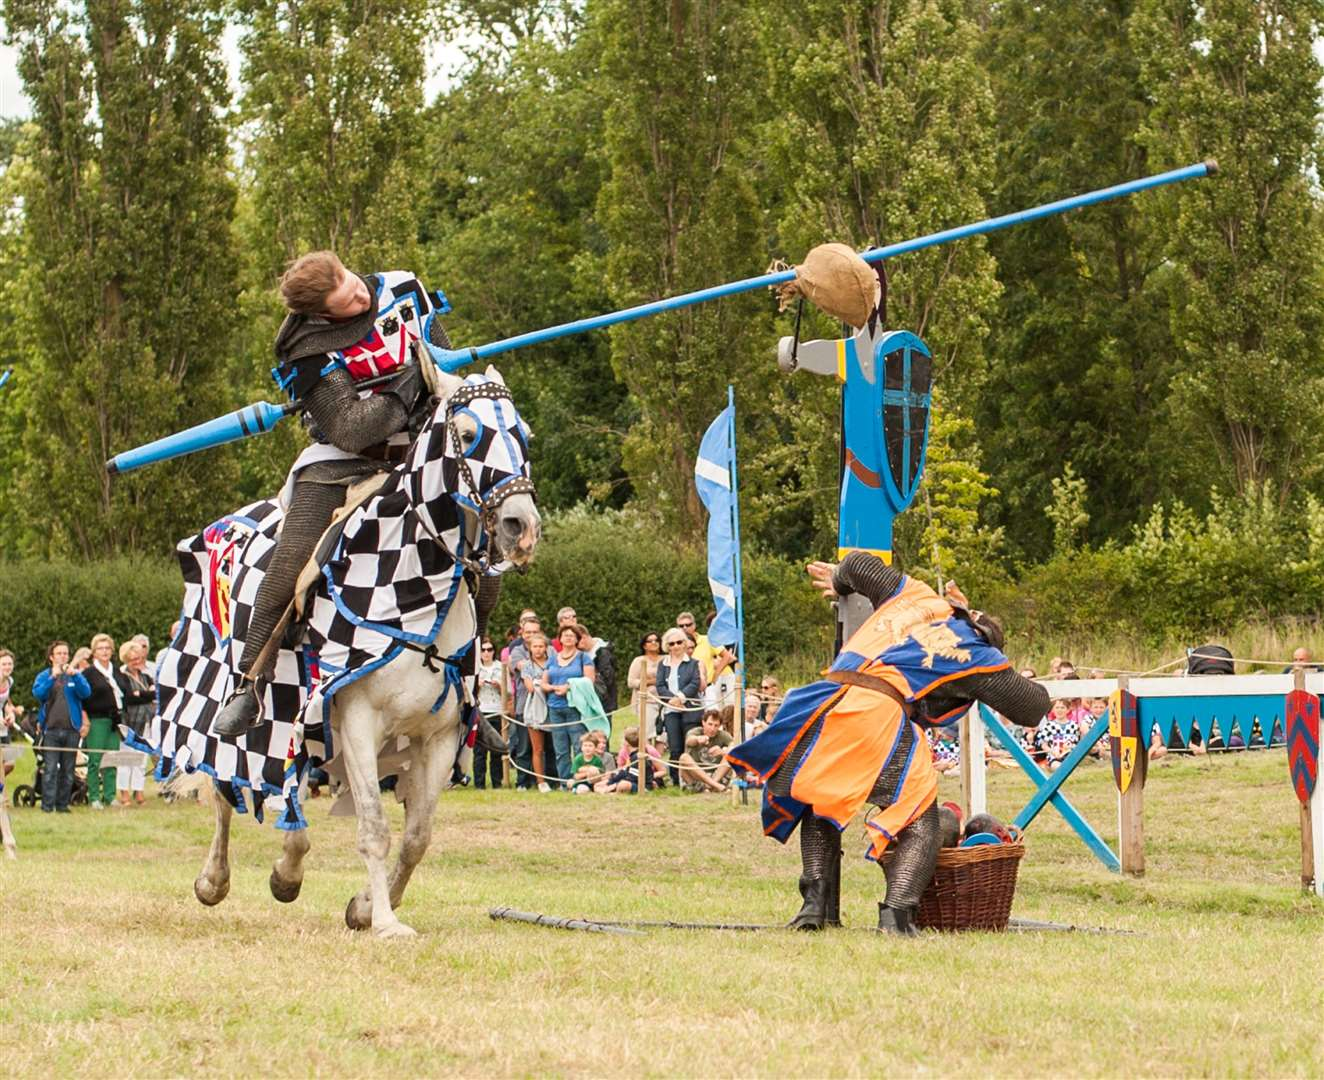 Jousting at Hever Castle is back at weekends his summer